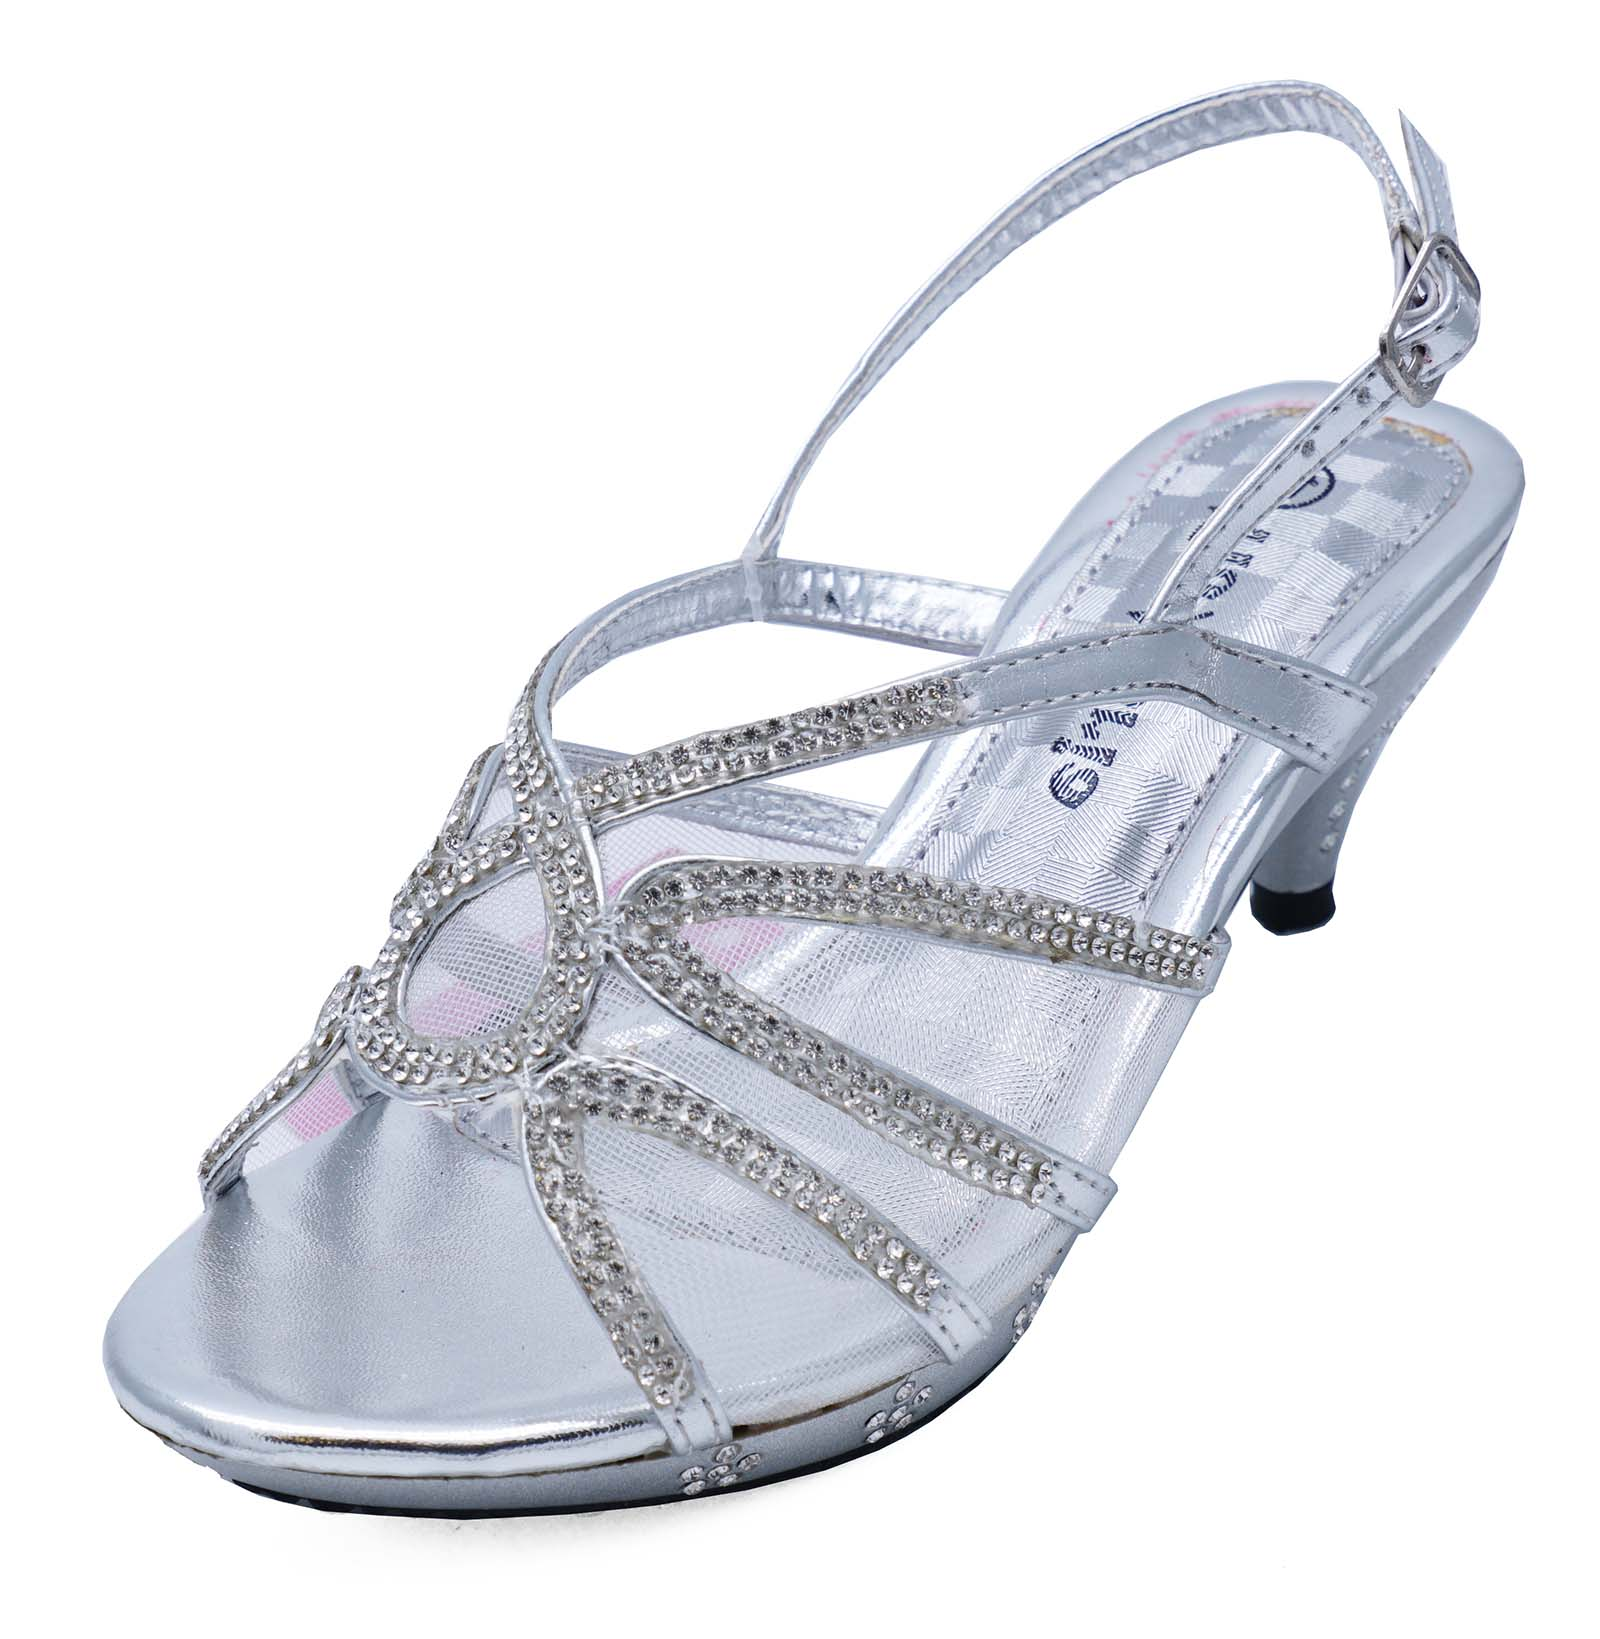 437366edff Details about GIRLS CHILDRENS SILVER DRESS-UP DIAMANTE LOW-HEEL SANDALS  PARTY SHOES SIZES 10-2